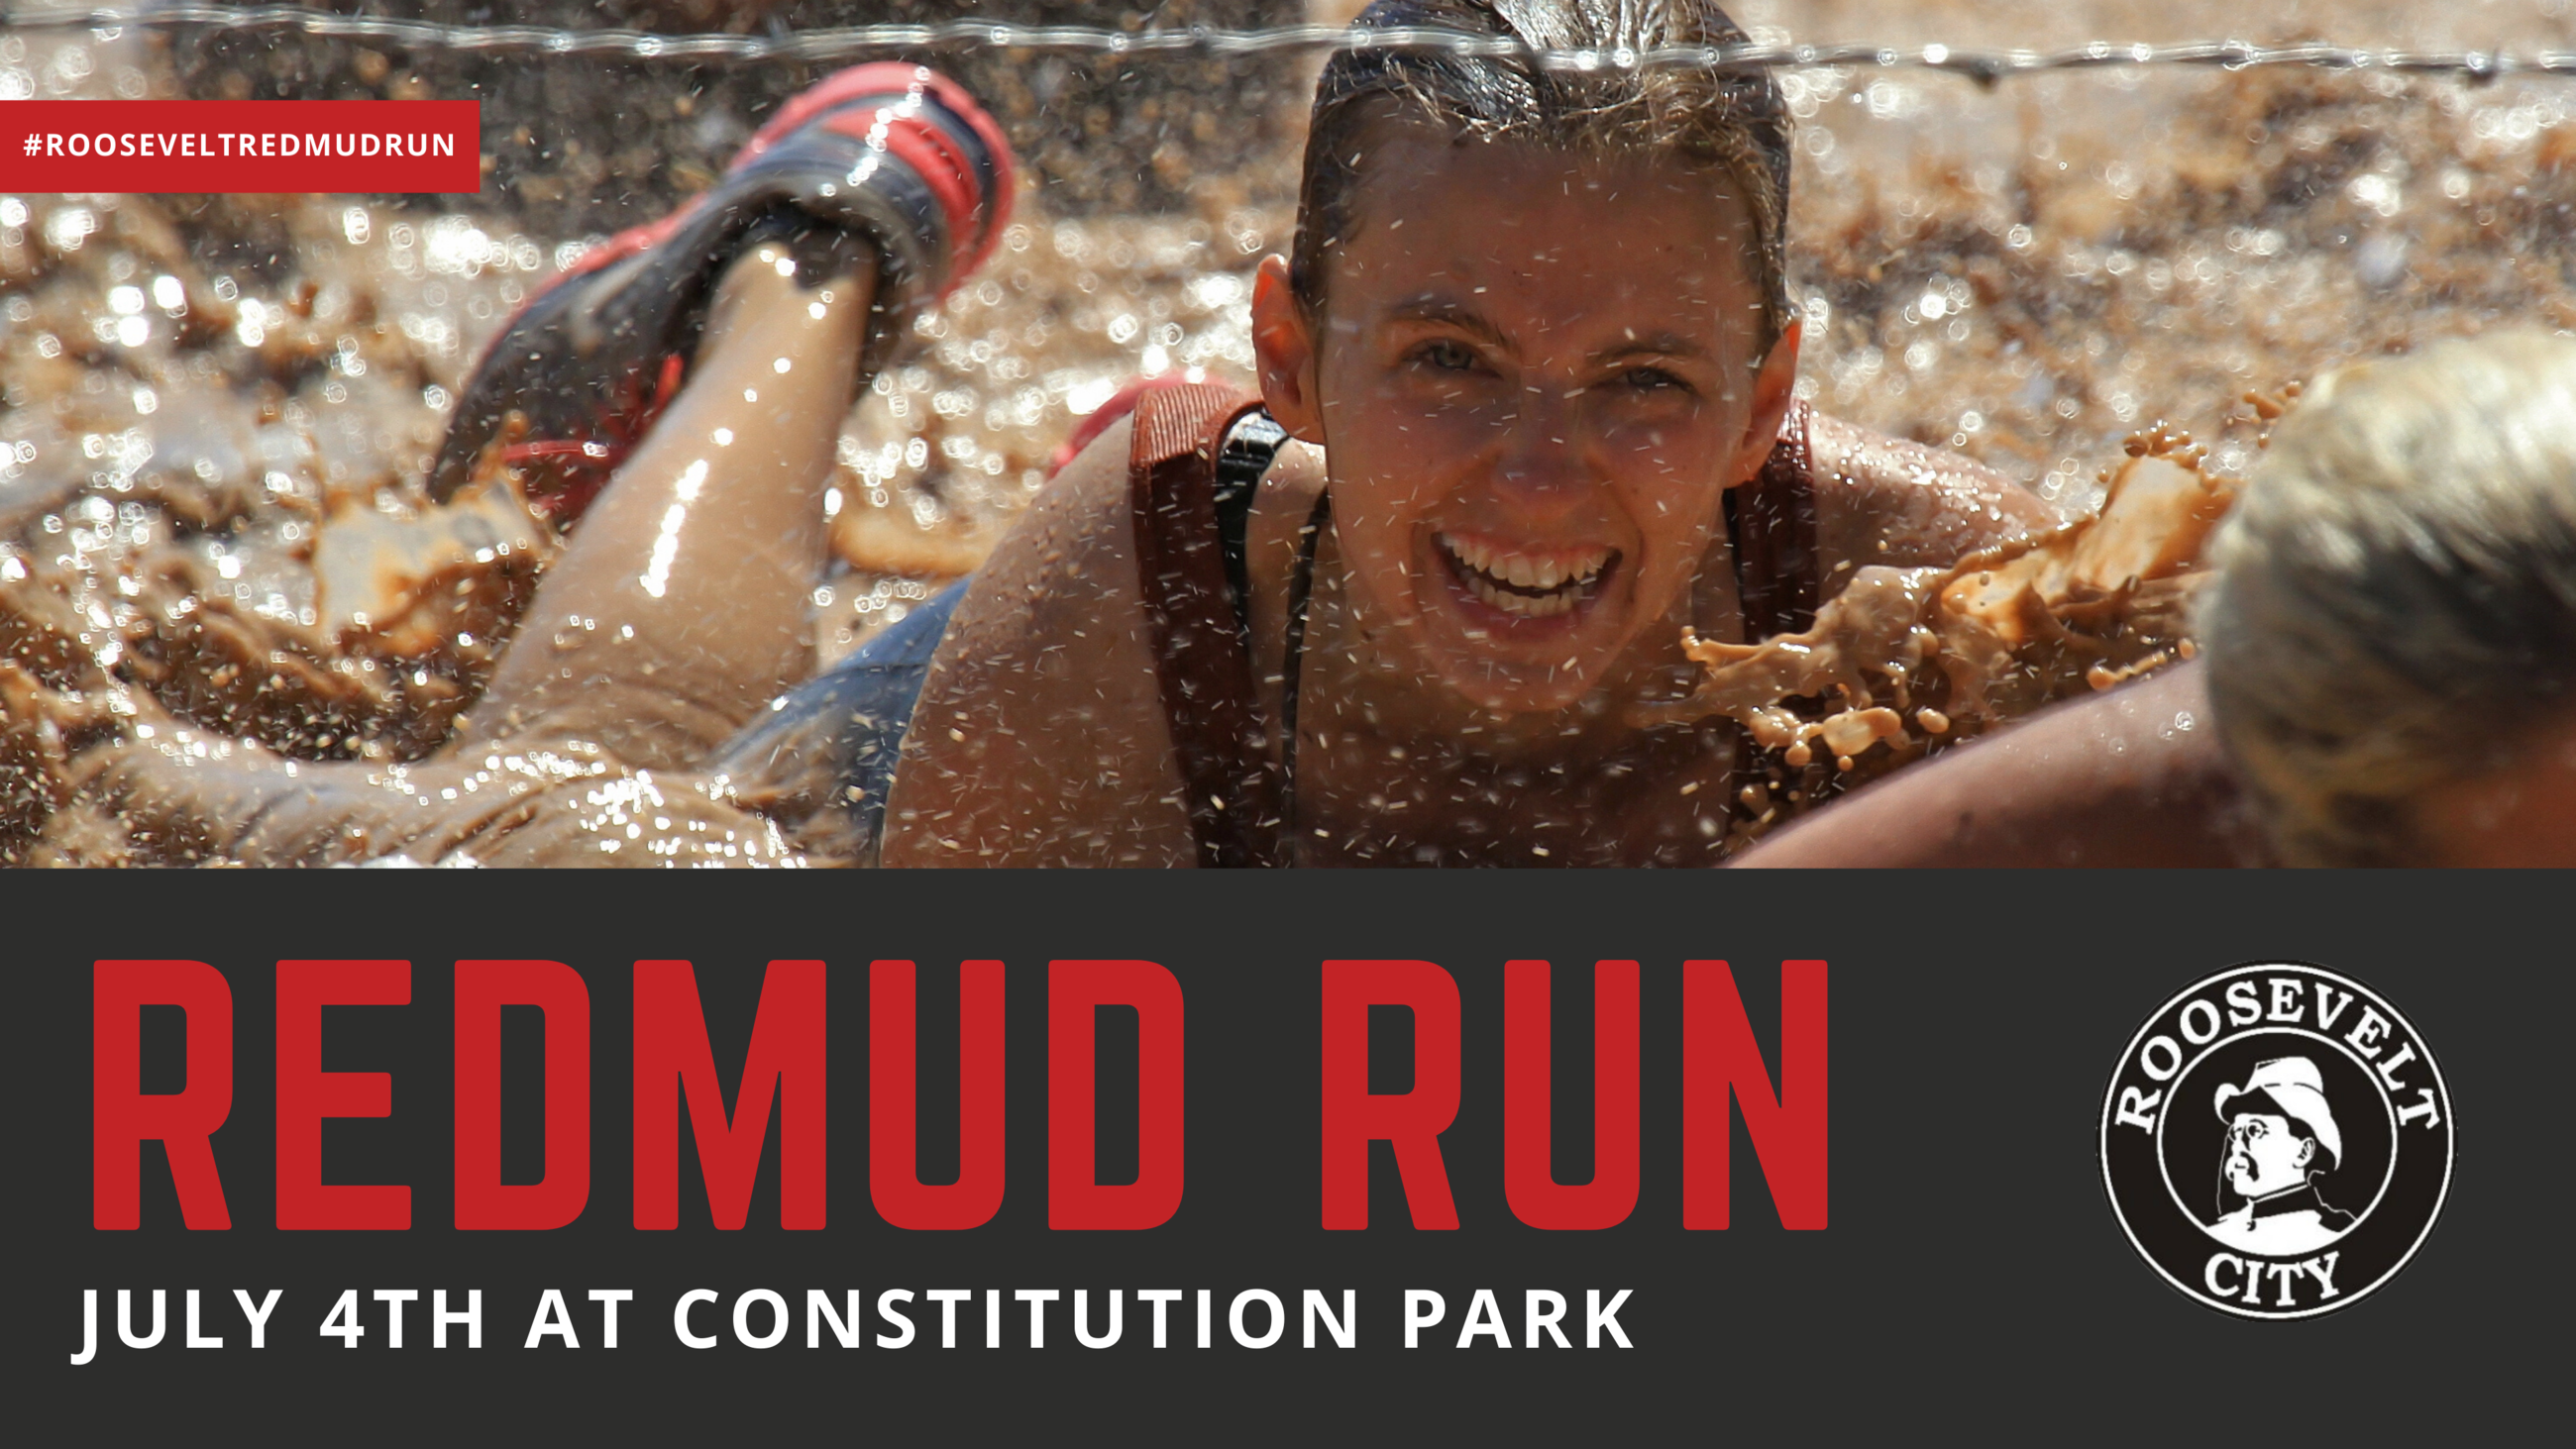 "A smiling girl splashes through muddy water. The text reads ""Redmud Run July 4th at Constitution"